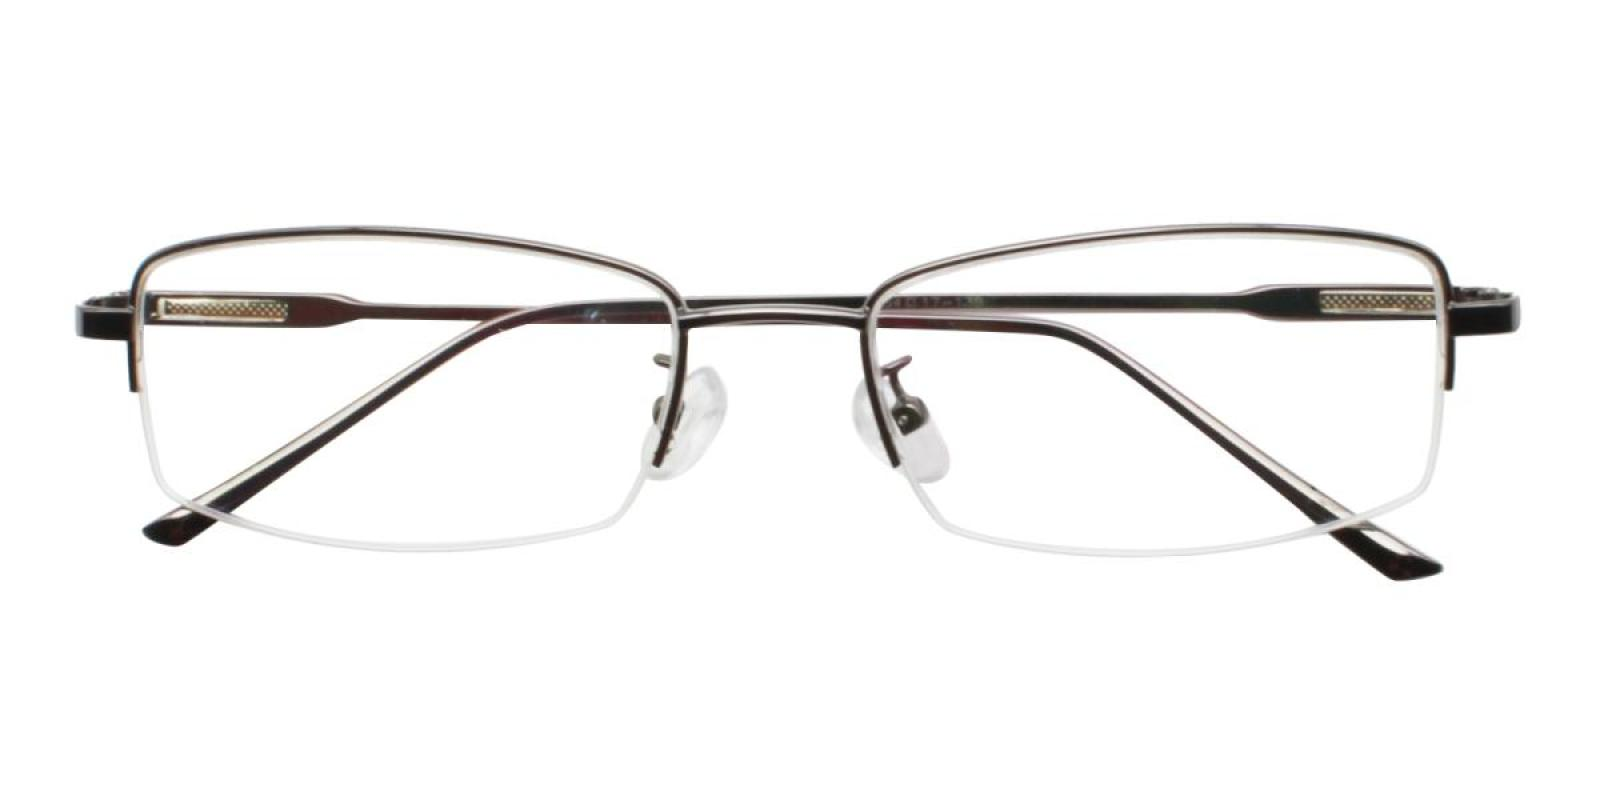 Germantown-Gun-Rectangle-Metal-Eyeglasses-detail